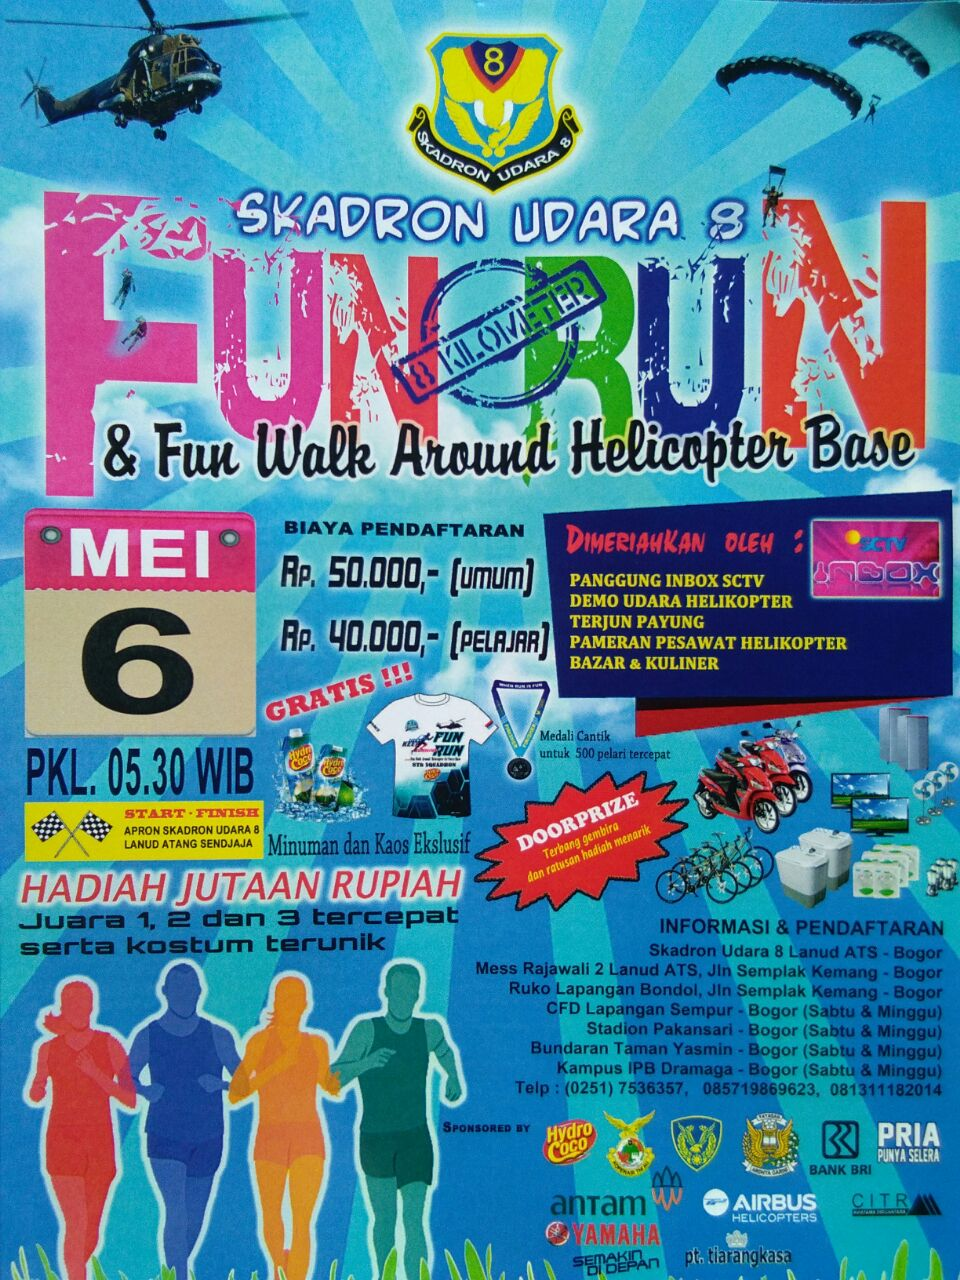 Skadron Udara 8 Fun Run • 2018